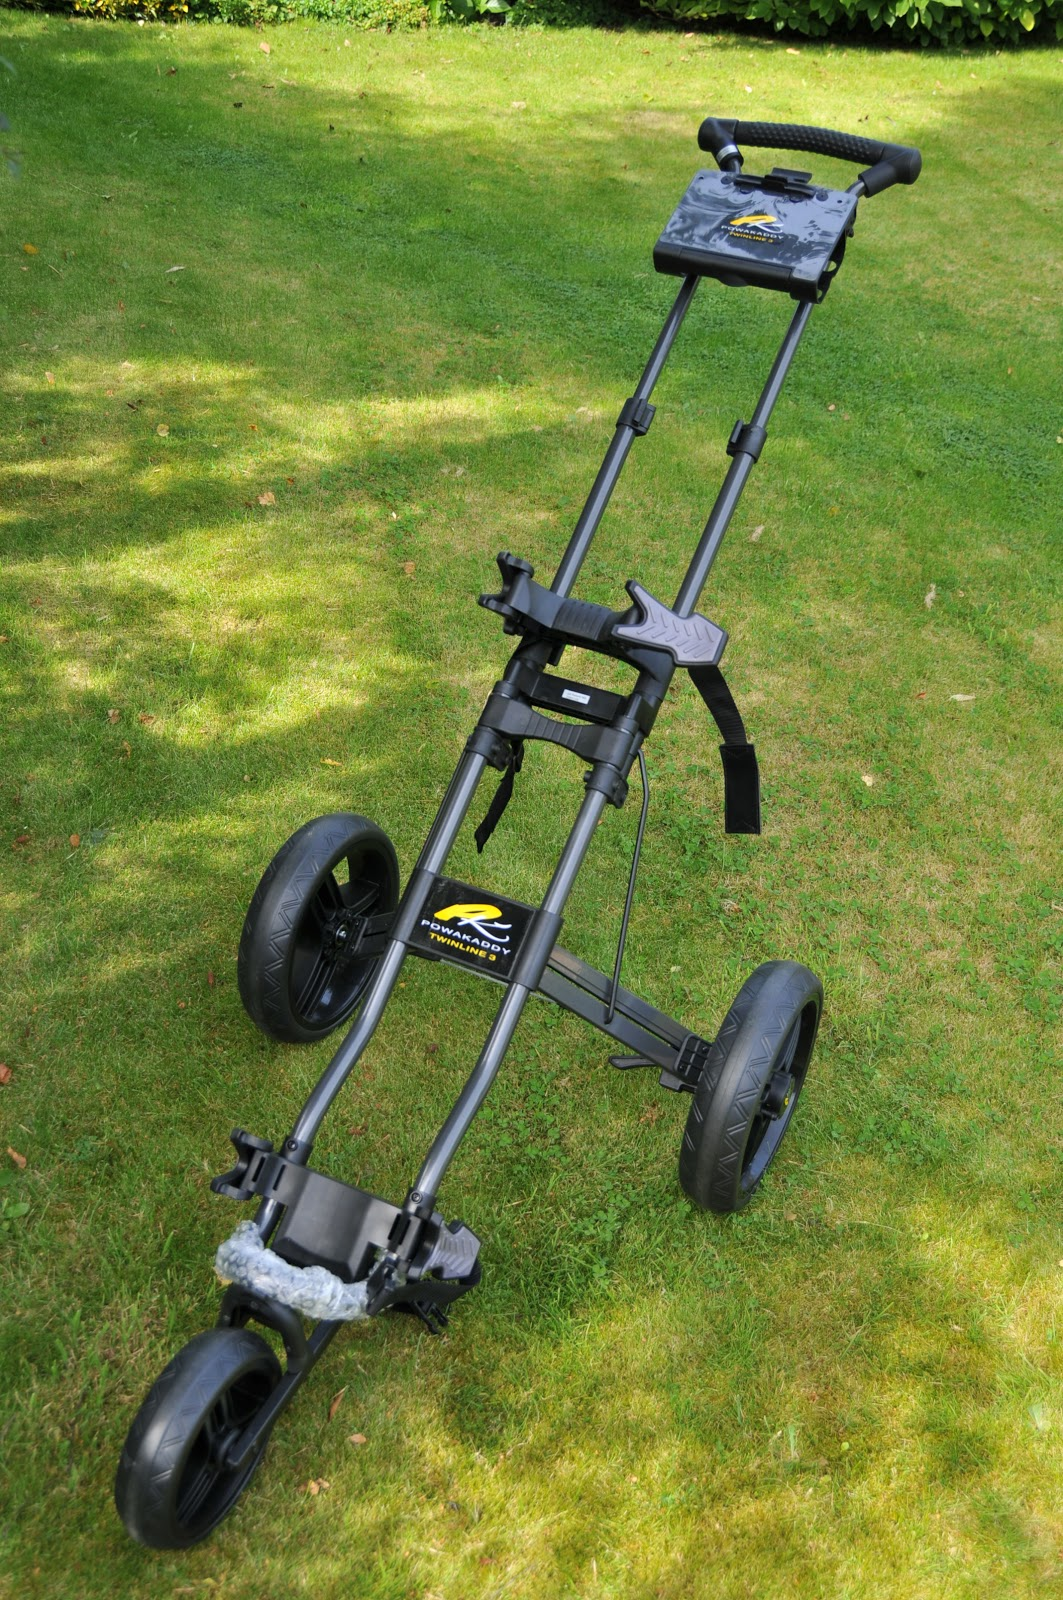 PowaKaddy Twinline 3 Review - Hooked: Ireland's Golf Courses